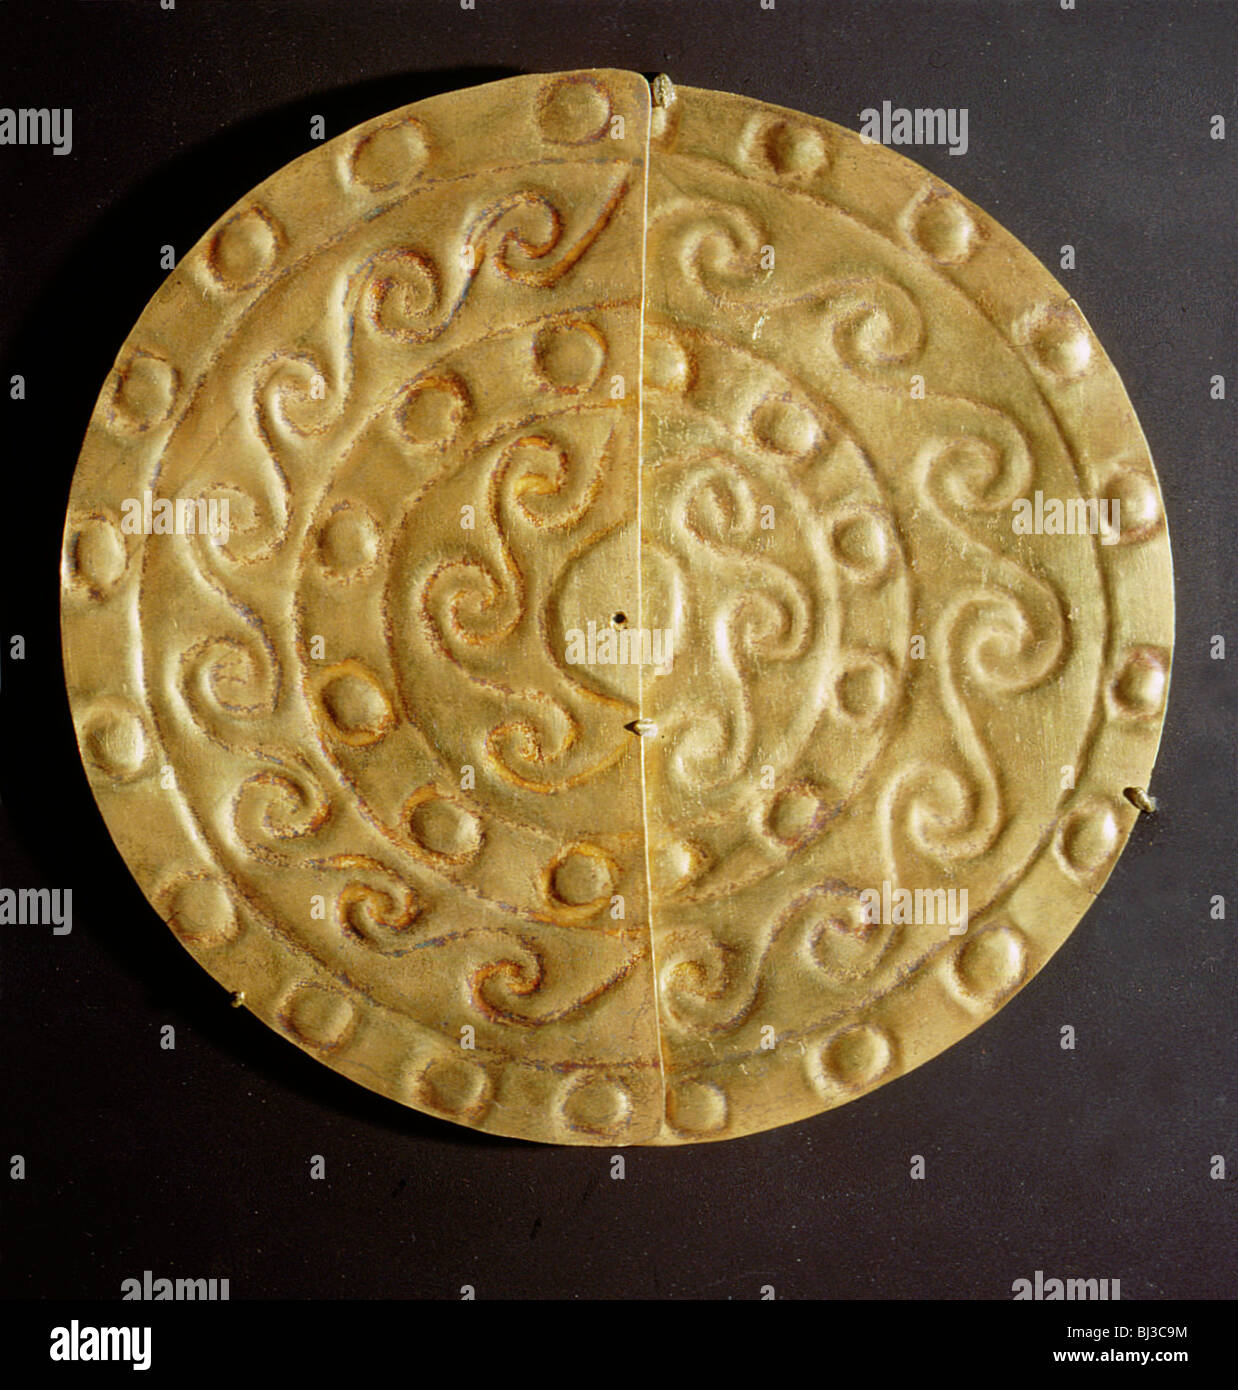 A pair of perforated embossed gold half-discs, Mochica, north coastal Peru, 100-600. Artist: Werner Forman - Stock Image